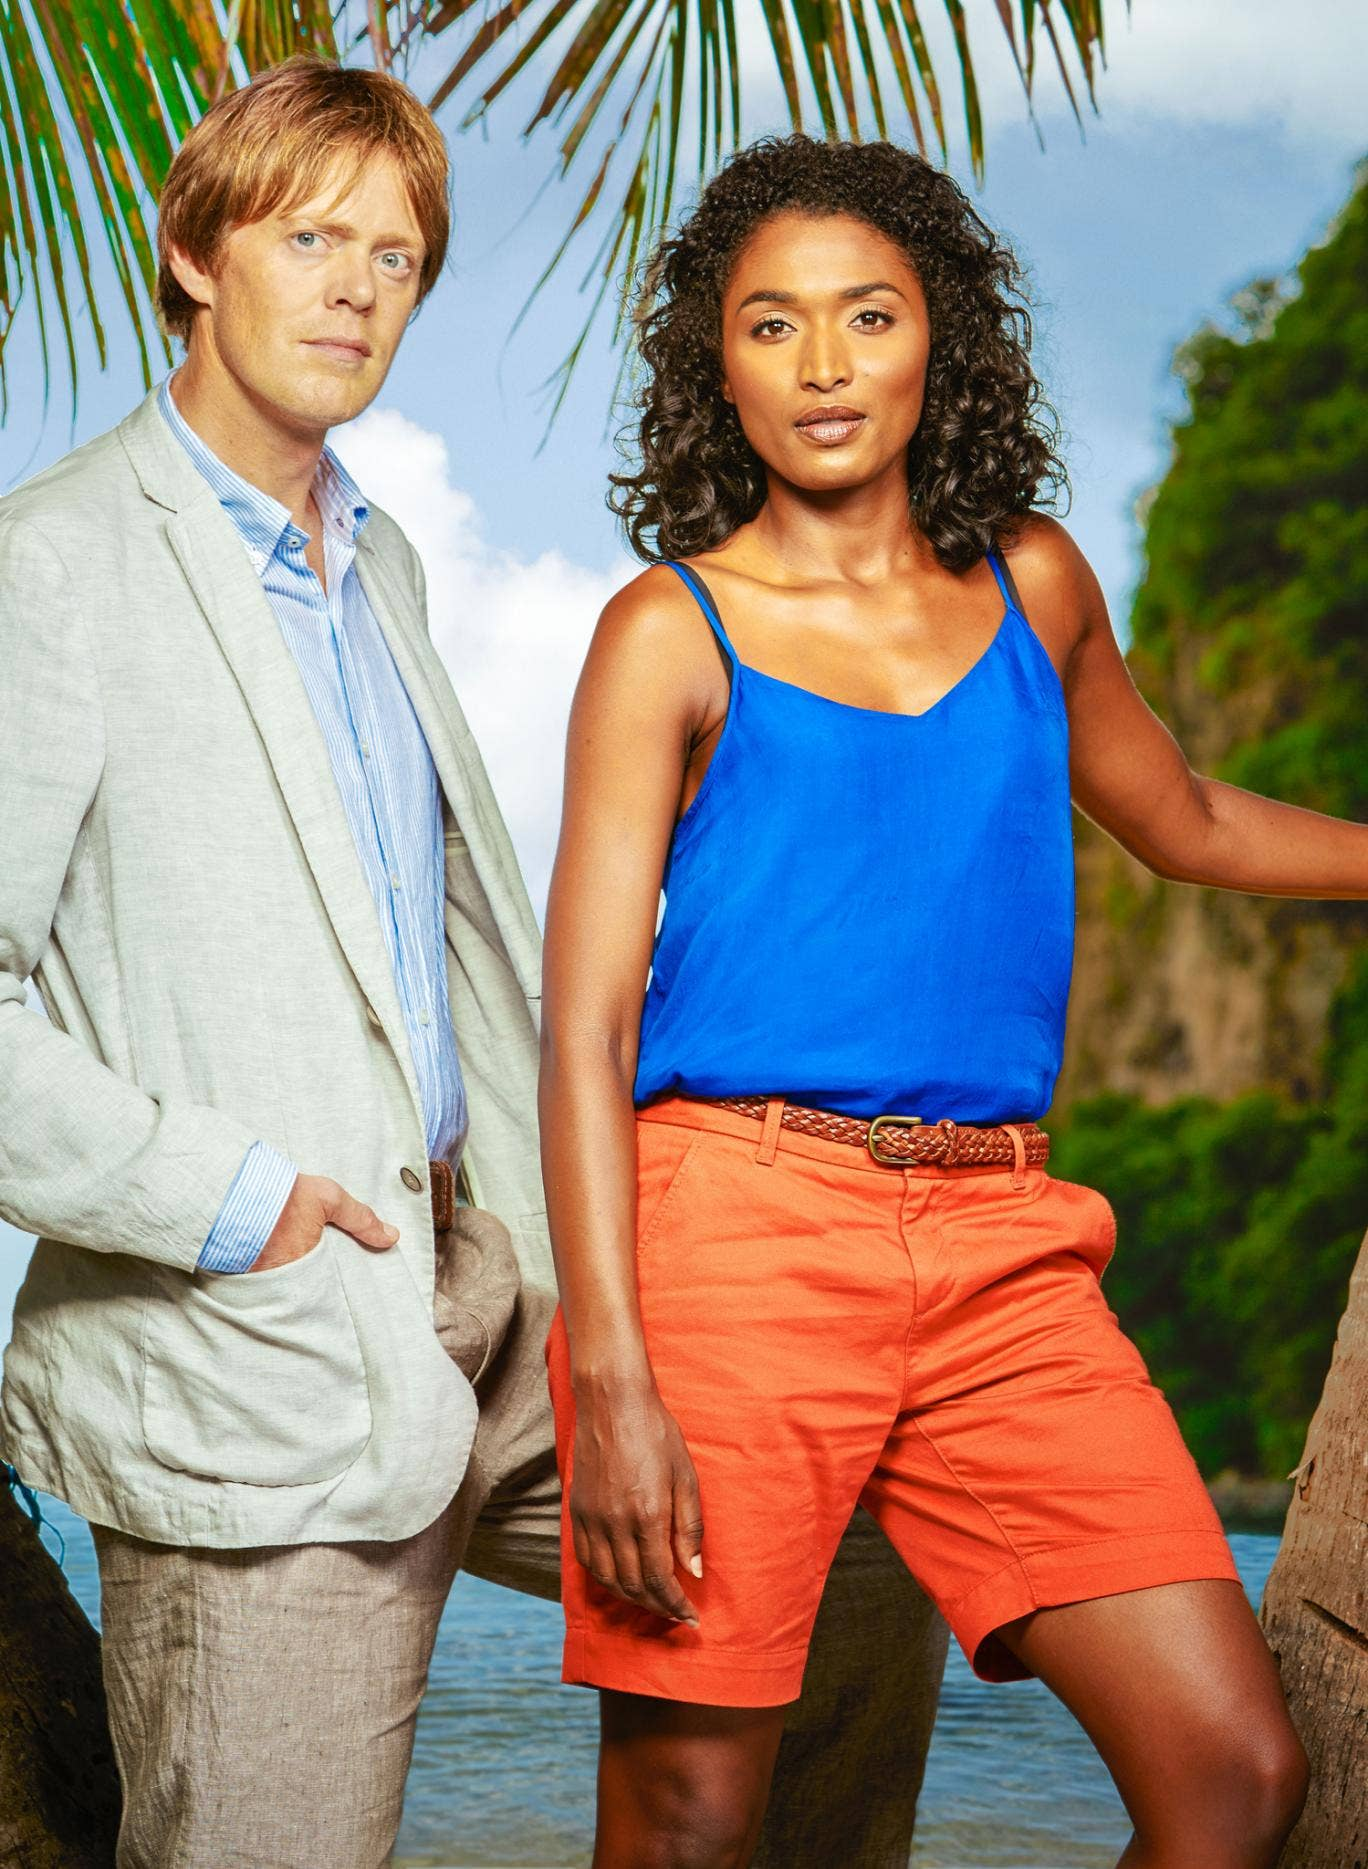 Kris Marshall and Sara Martins in 'Death in Paradise'